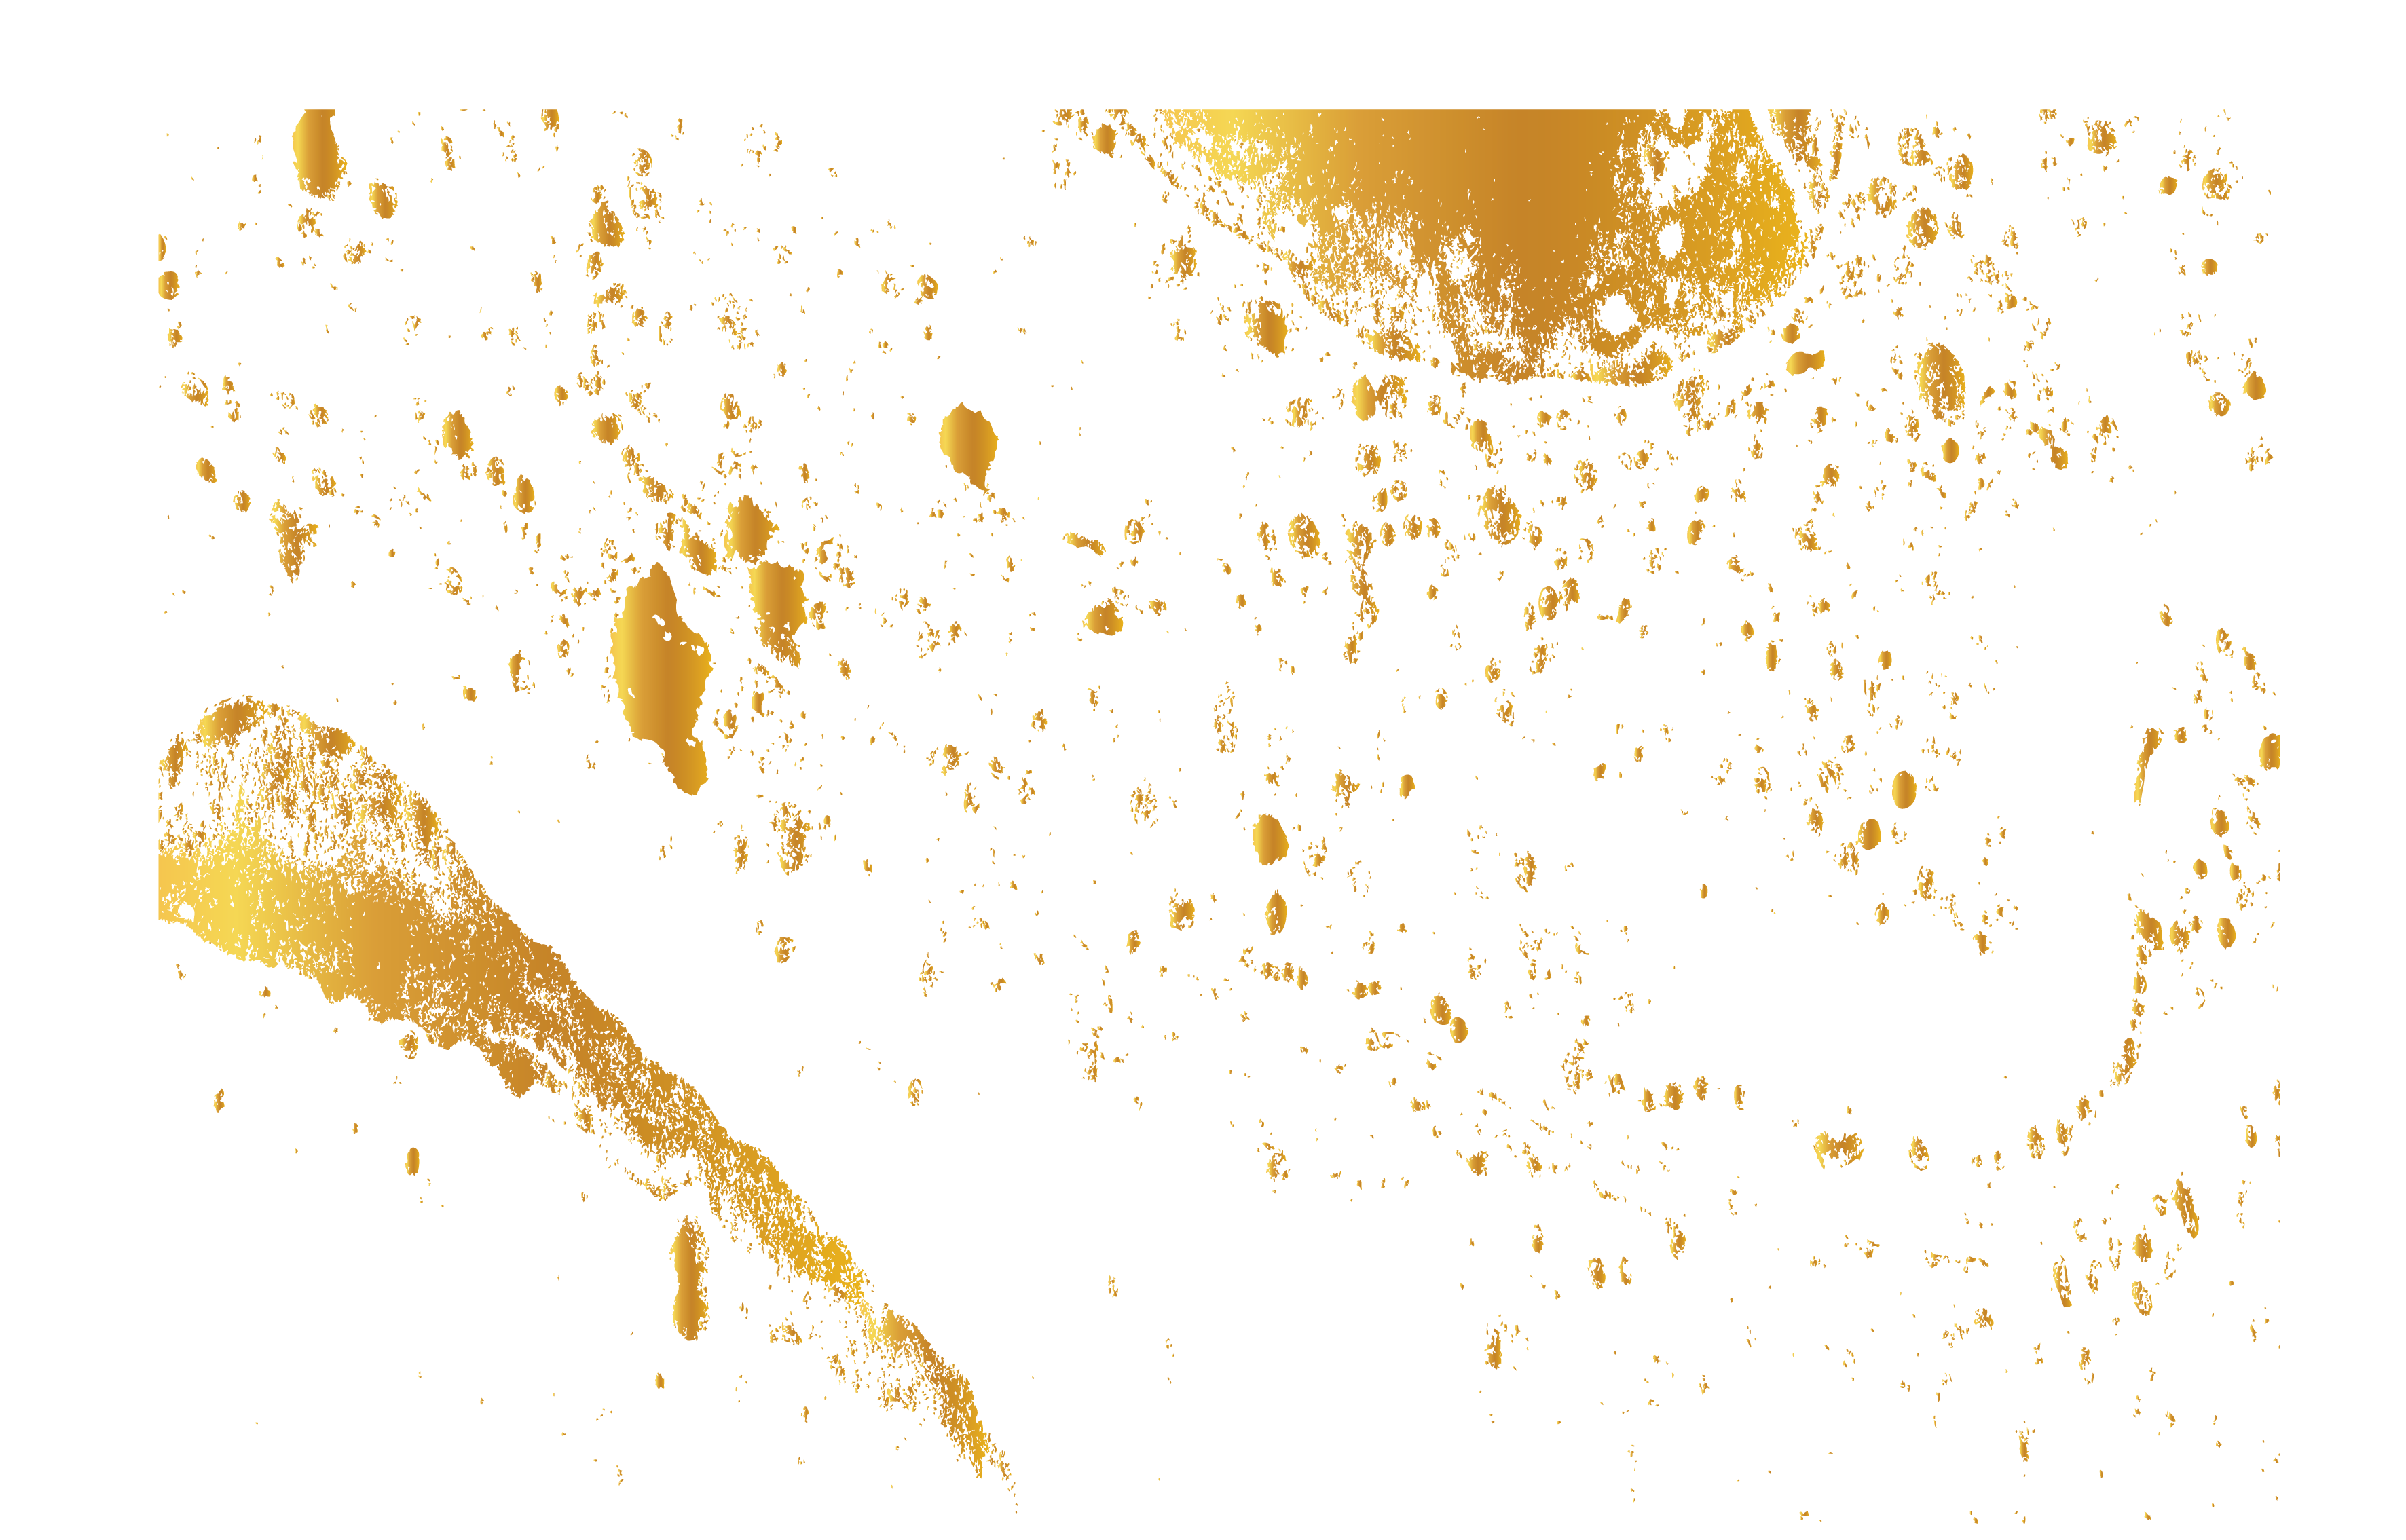 Download Vector Shading Splash Effect Gold Free Transparent Image HD.